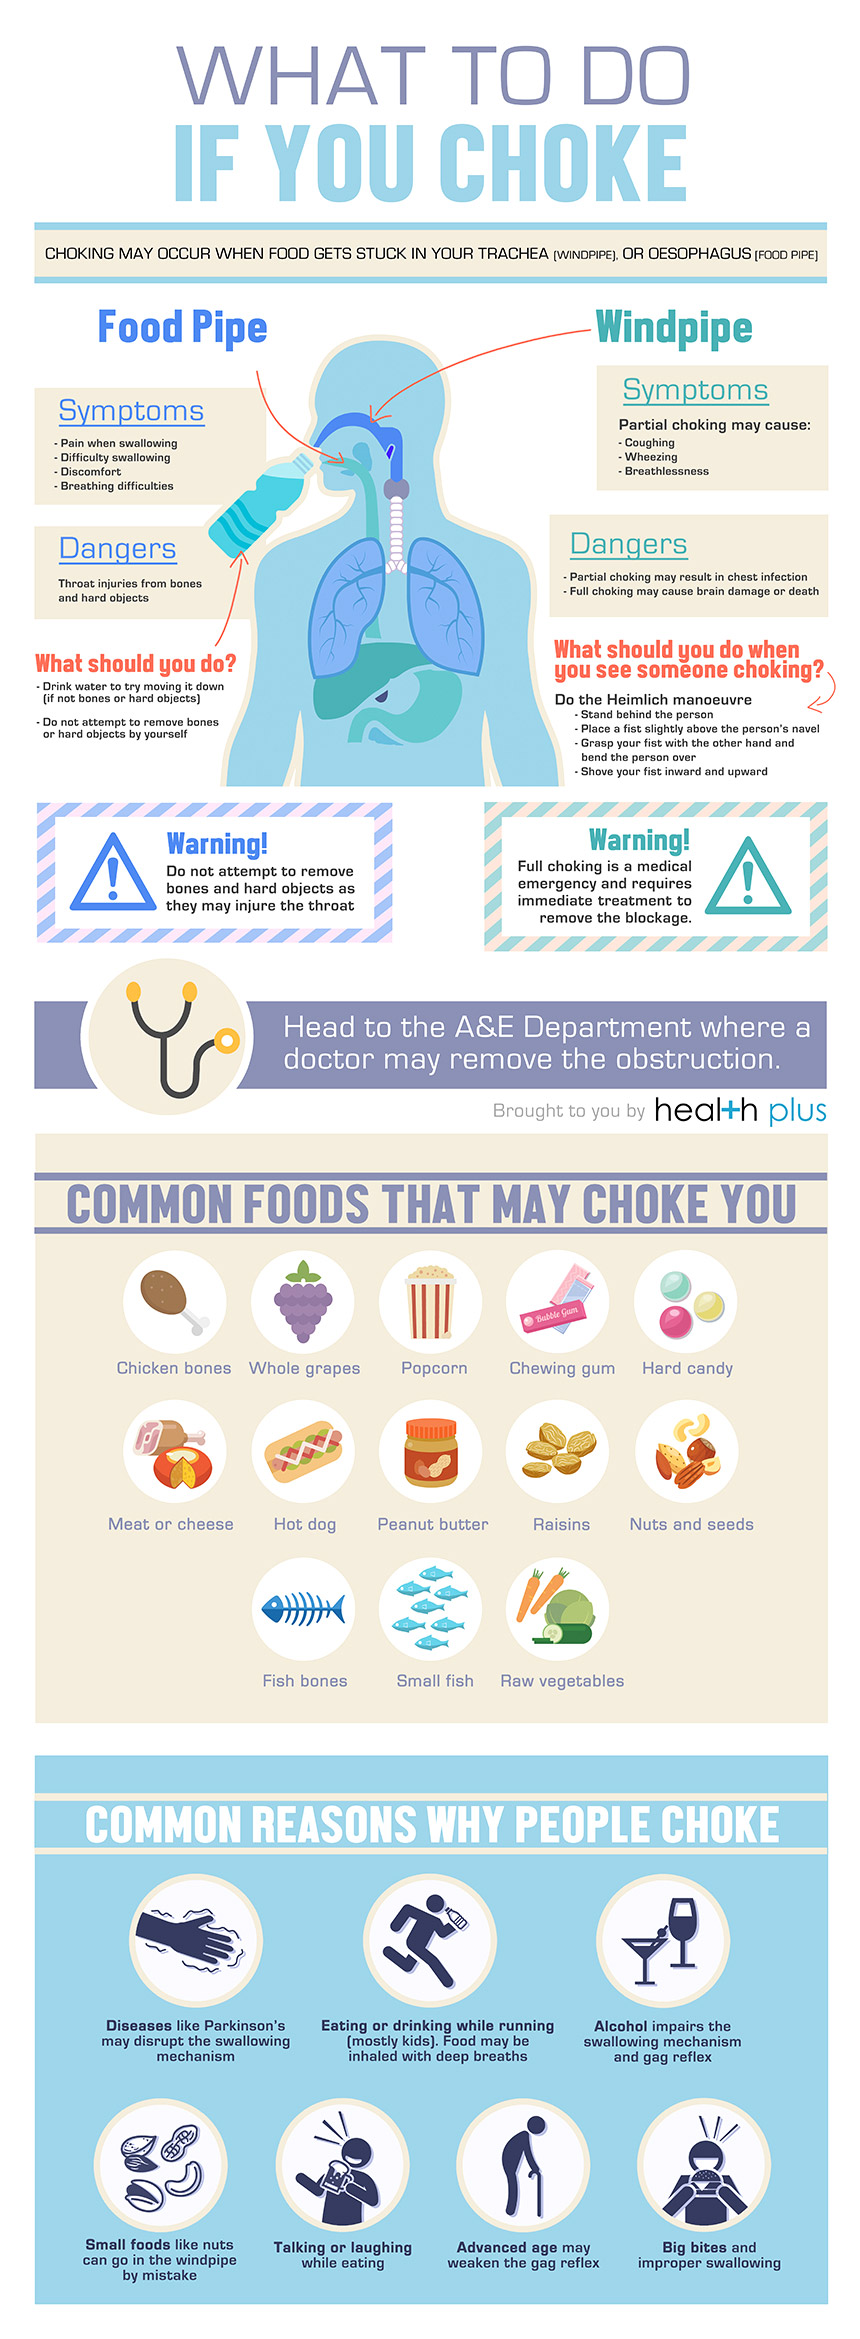 Different Kinds Of Choking And When You Should Go To The A&E | Health Plus